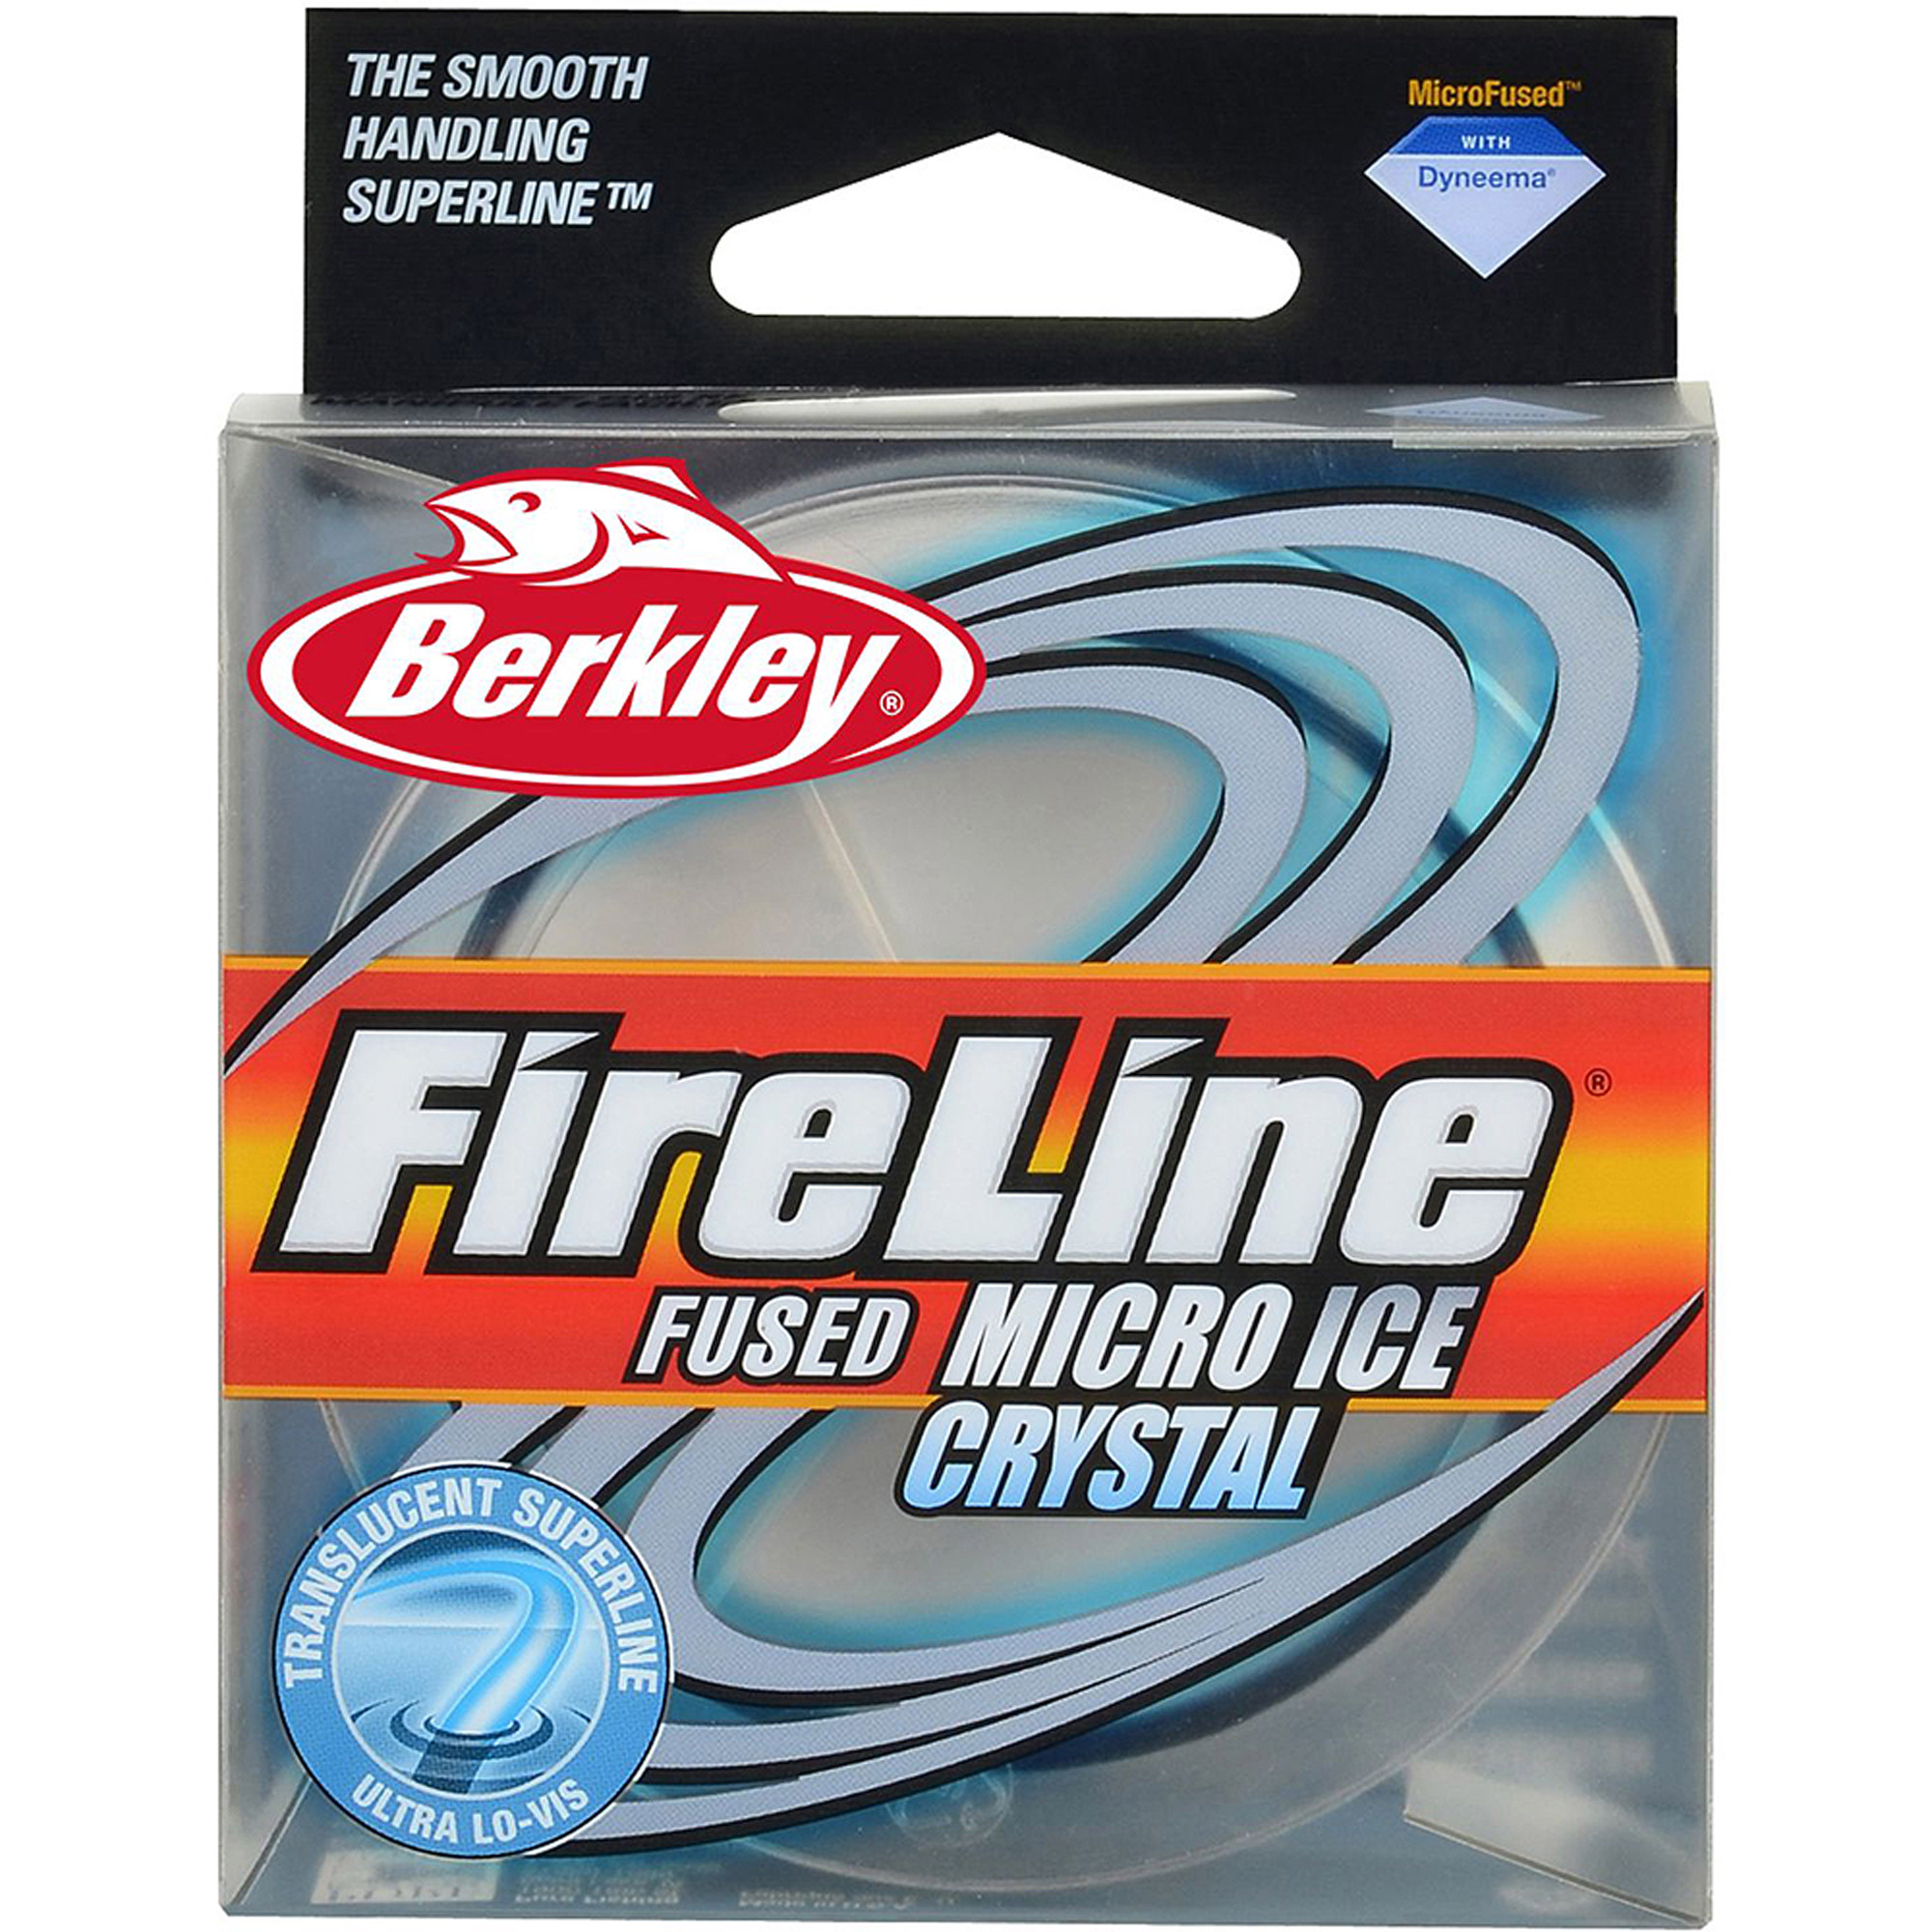 Berkley Fireline Micro Ice Fused Original Fishing Line, 50 yd Pony Spool